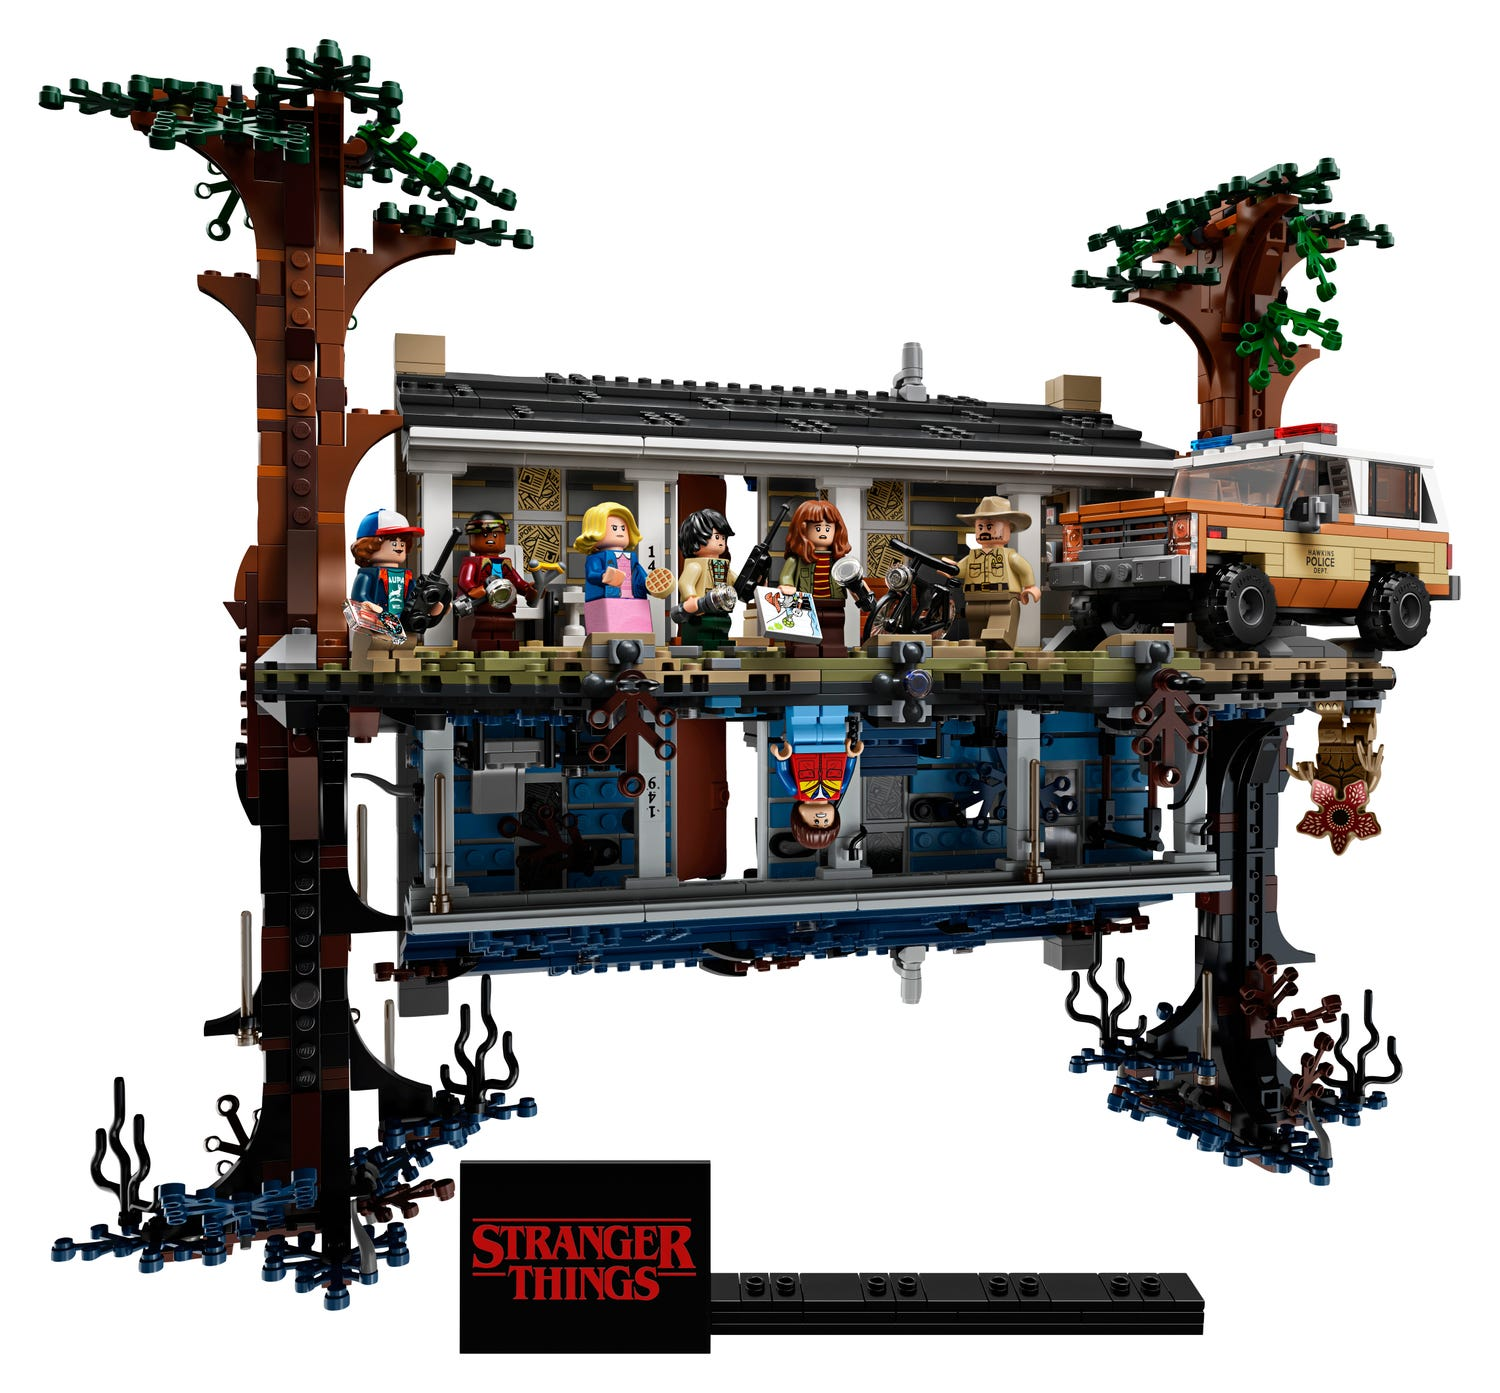 LEGO Christmas Gift Guide - Stranger Things Set